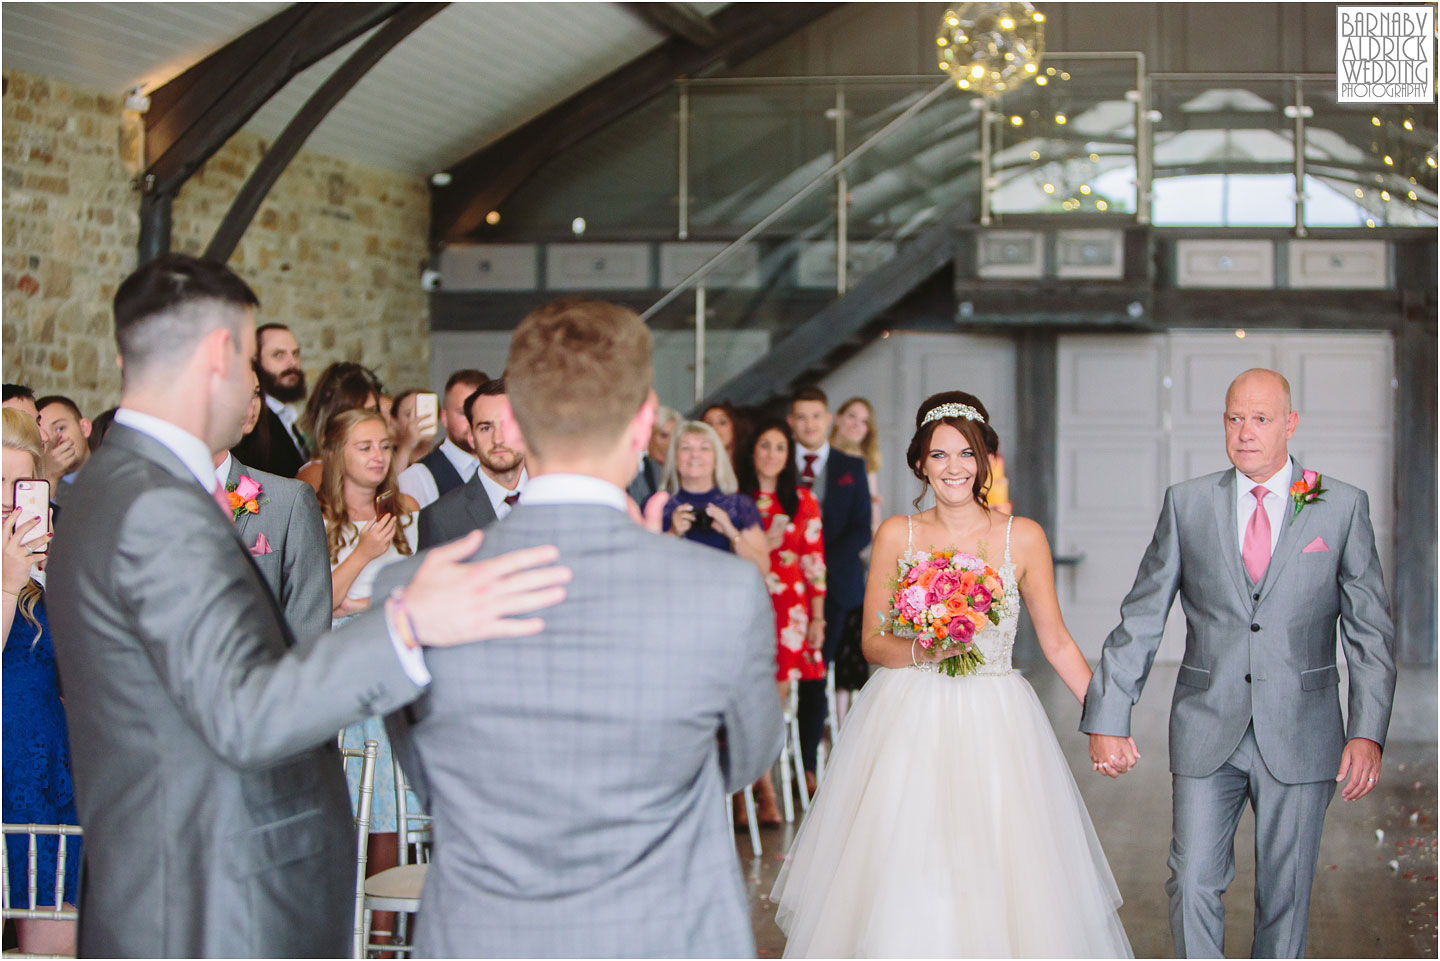 Tears at seeing the bride for the first time at Yorkshire Wedding Barn near Richmond